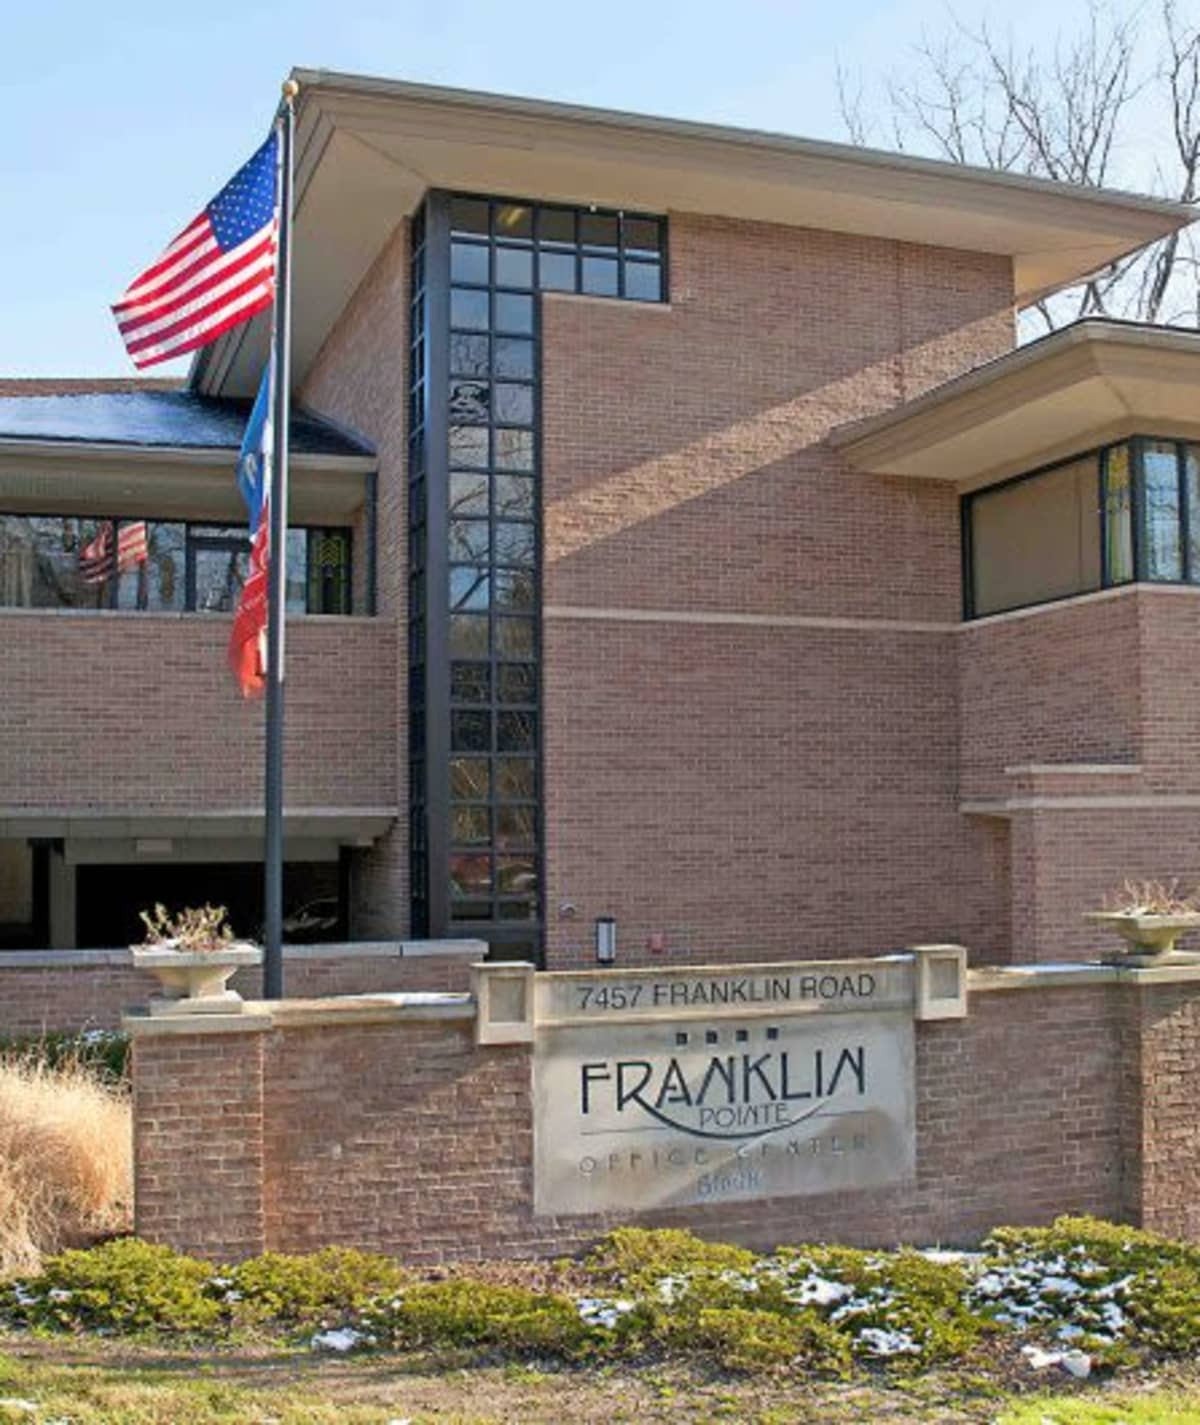 Franklin Pointe Office Center in Bloomfield Township, Michigan